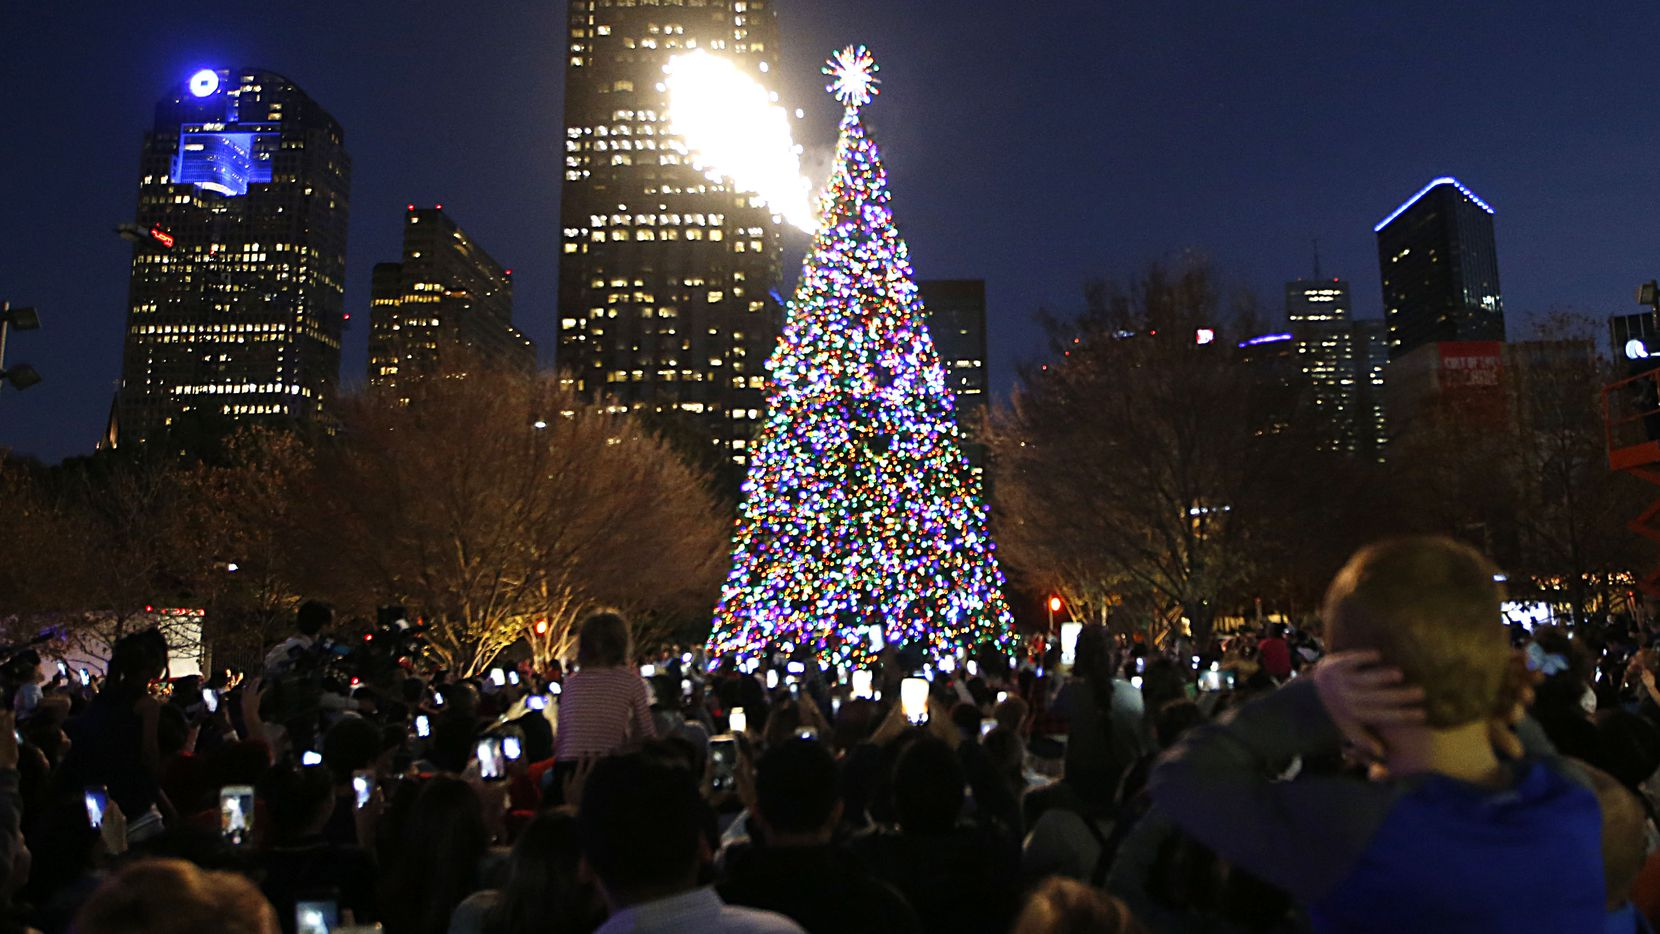 Fireworks go off during the Klyde Warren Park tree lighting in 2018.